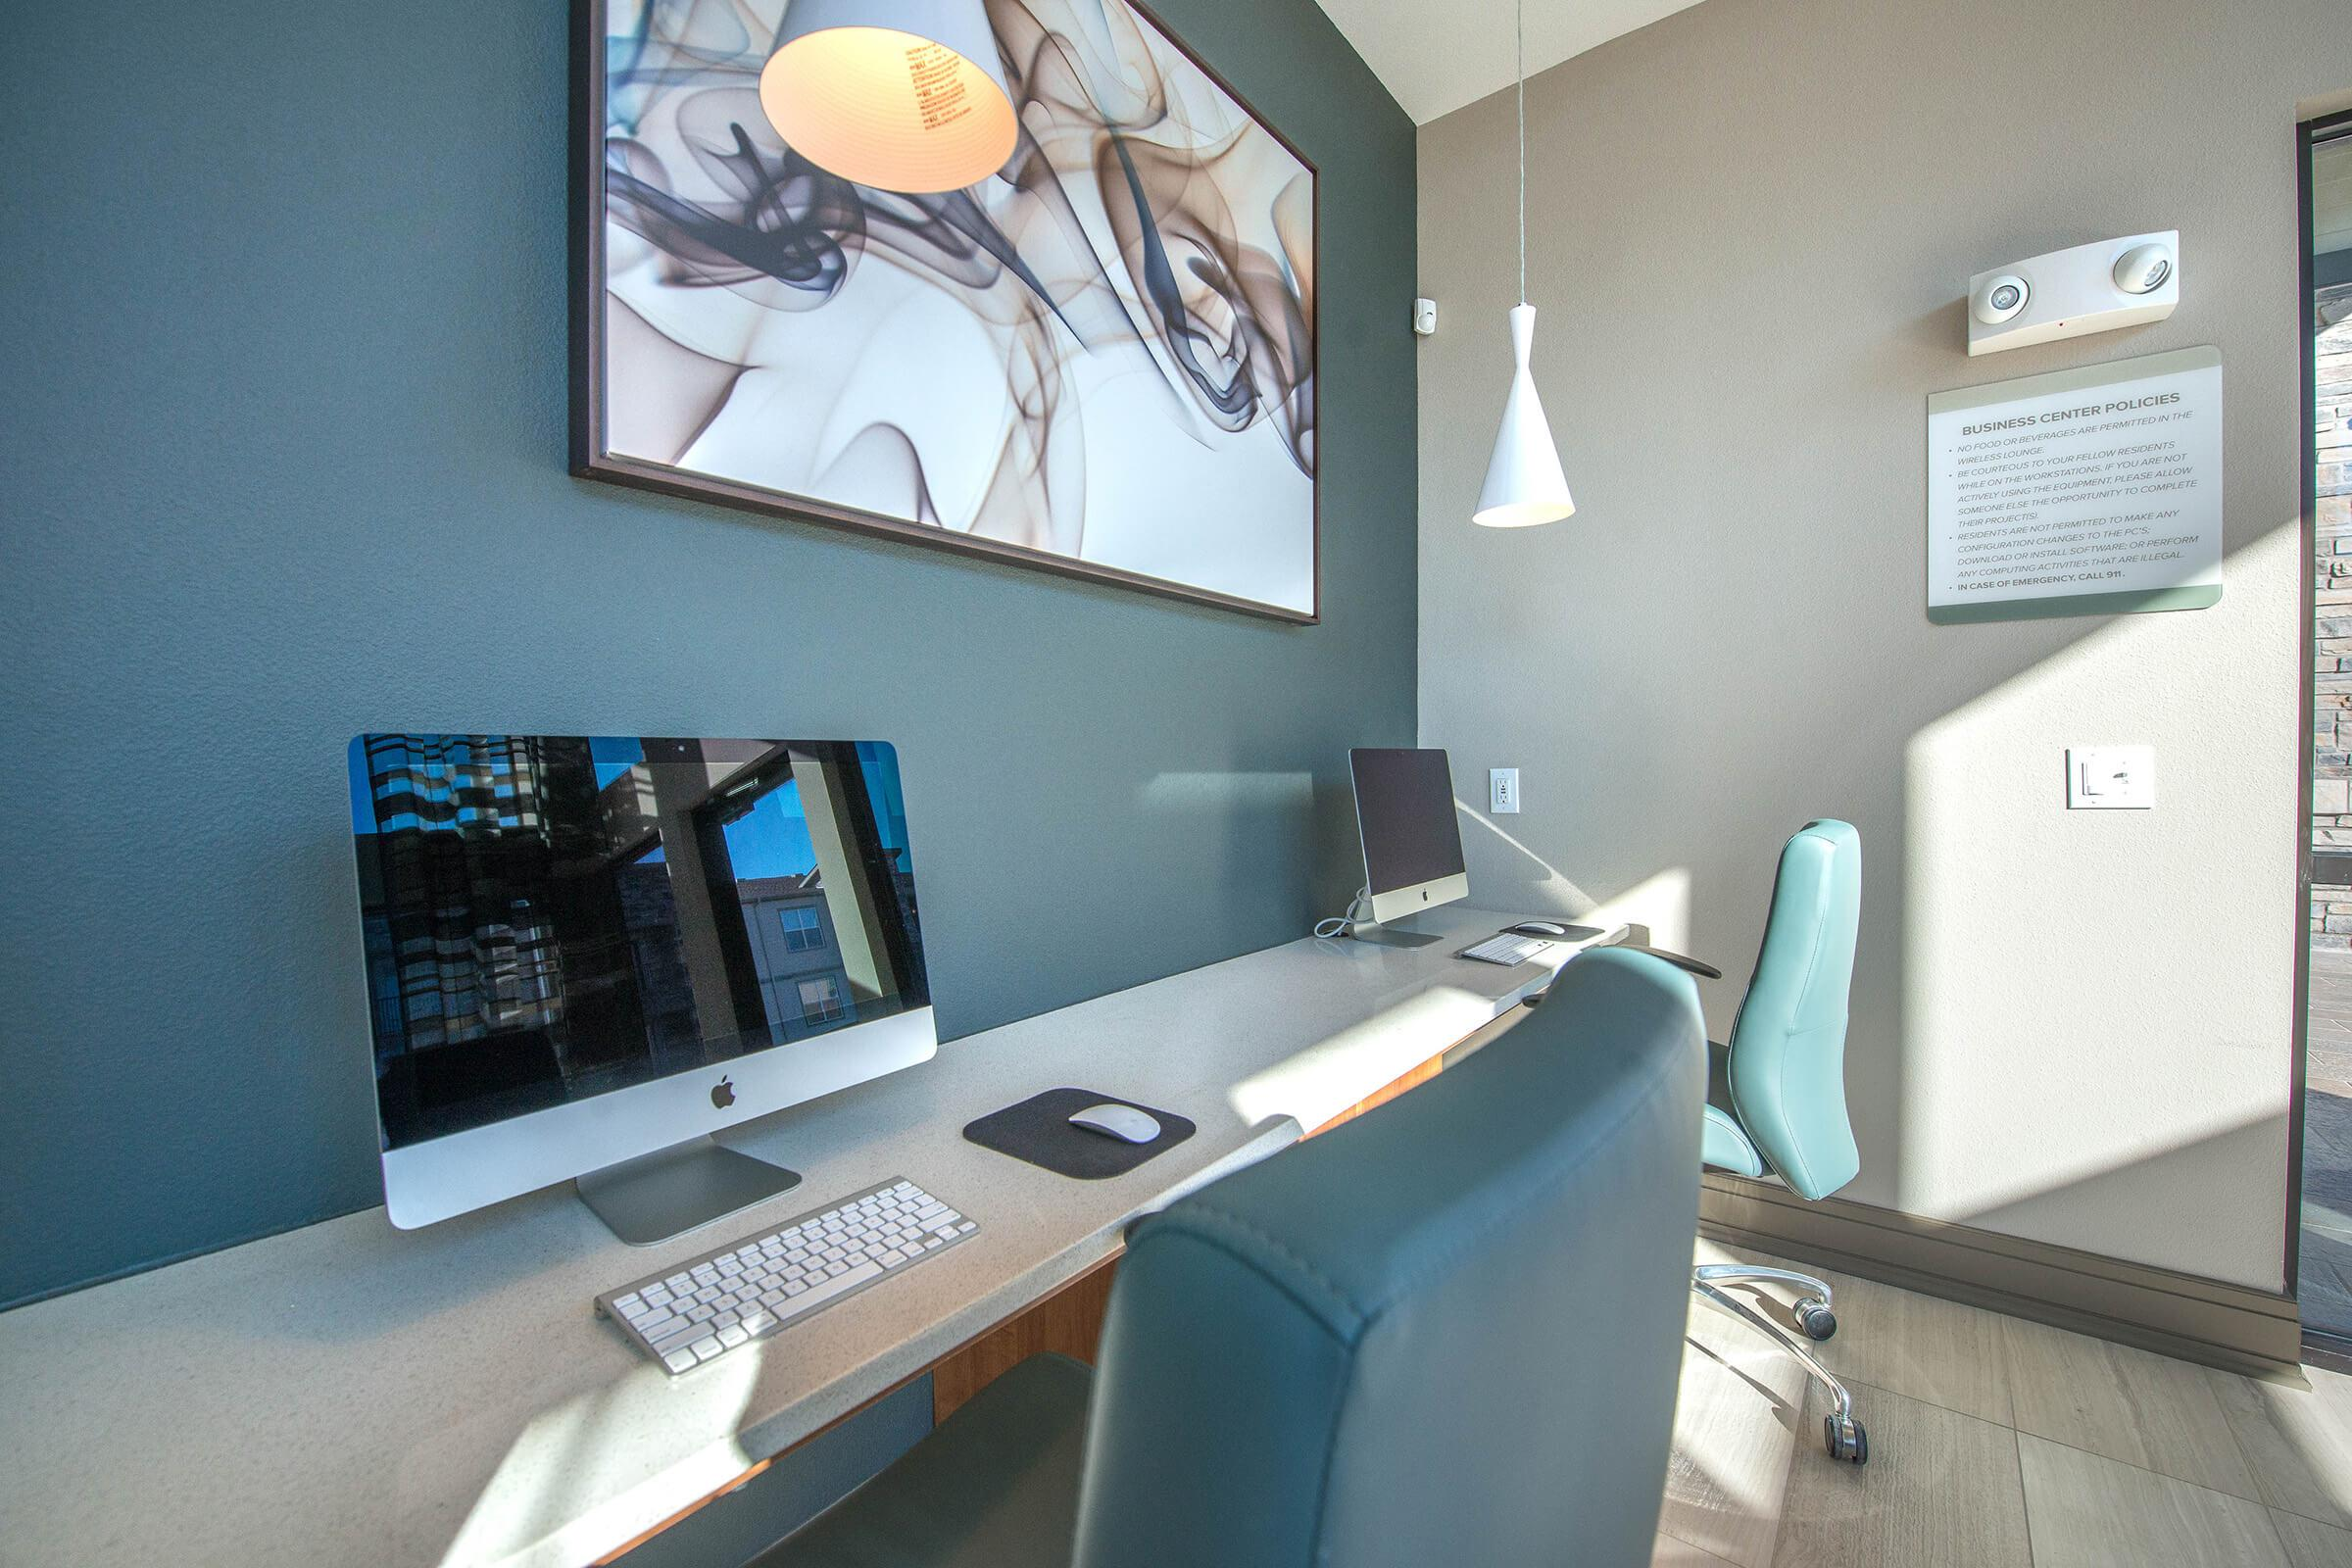 a desk with a computer in a room